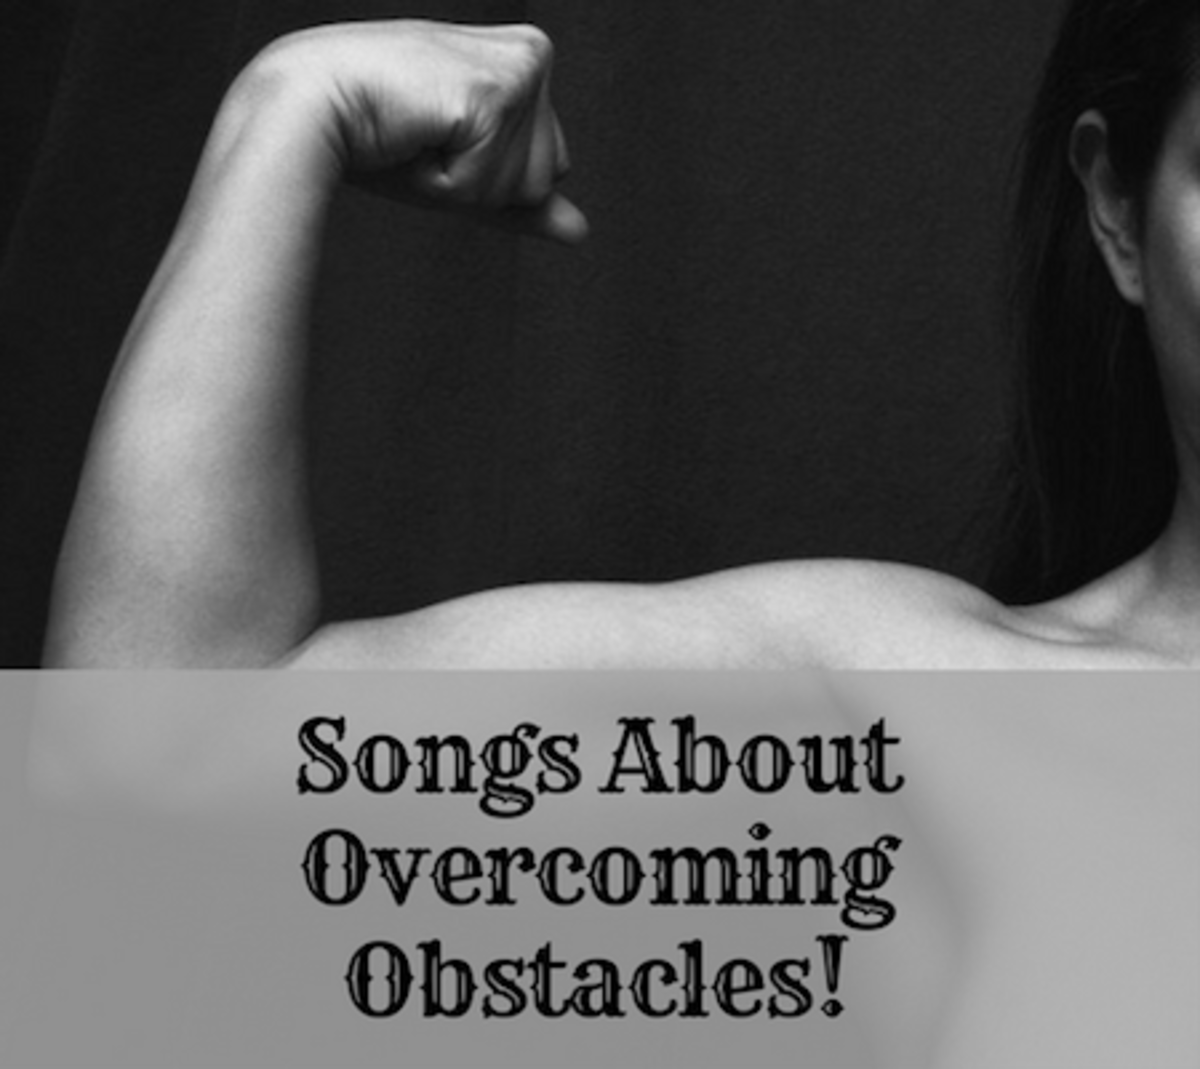 48 Songs About Overcoming Obstacles, Adversity, Hard Times, Challenges, and Not Giving Up